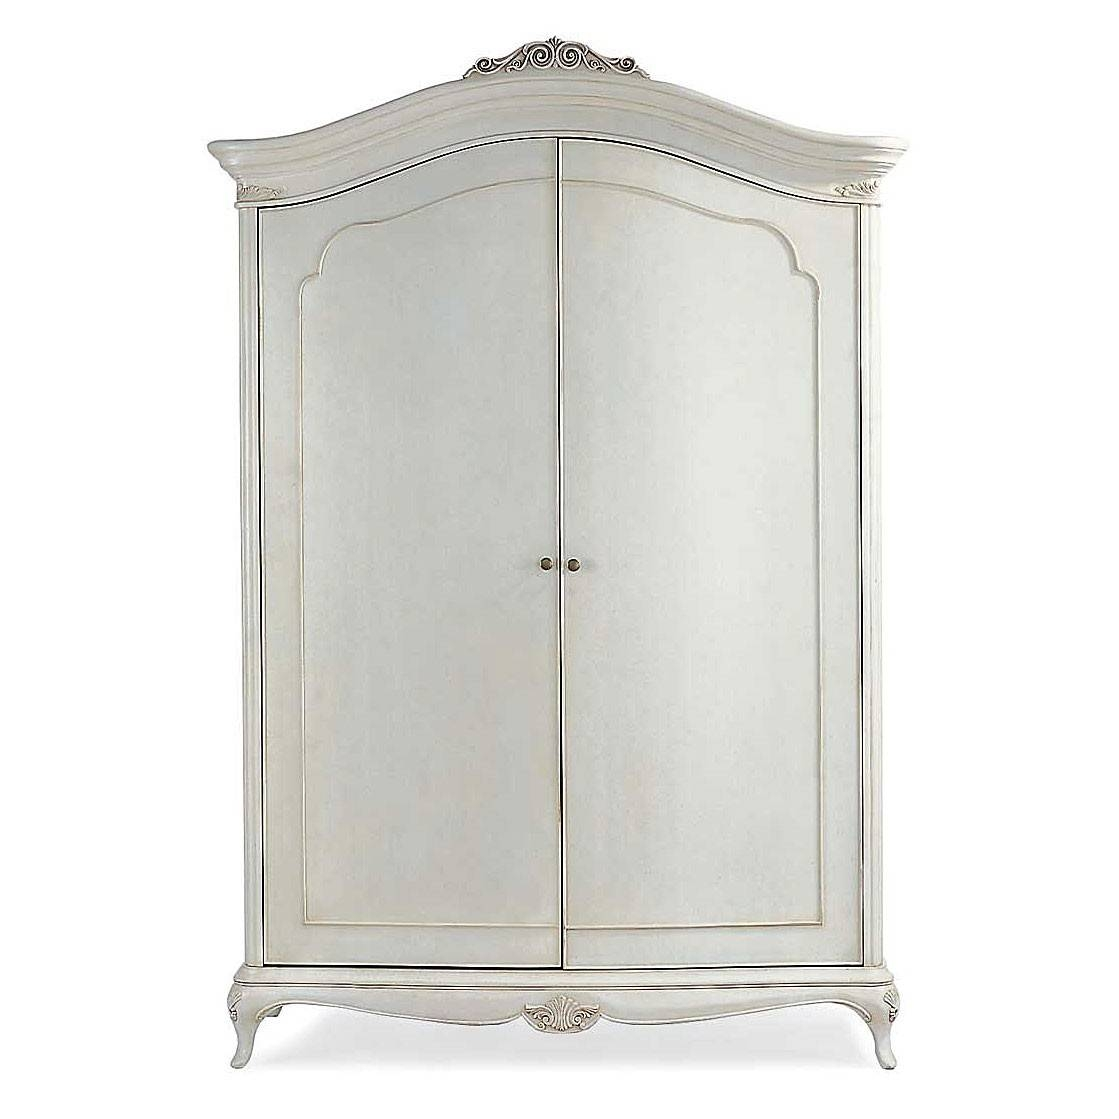 Ivory French Inspired Wide Fitted Wardrobe | French Bedroom within Venetian Glass Wardrobes (Image 3 of 15)